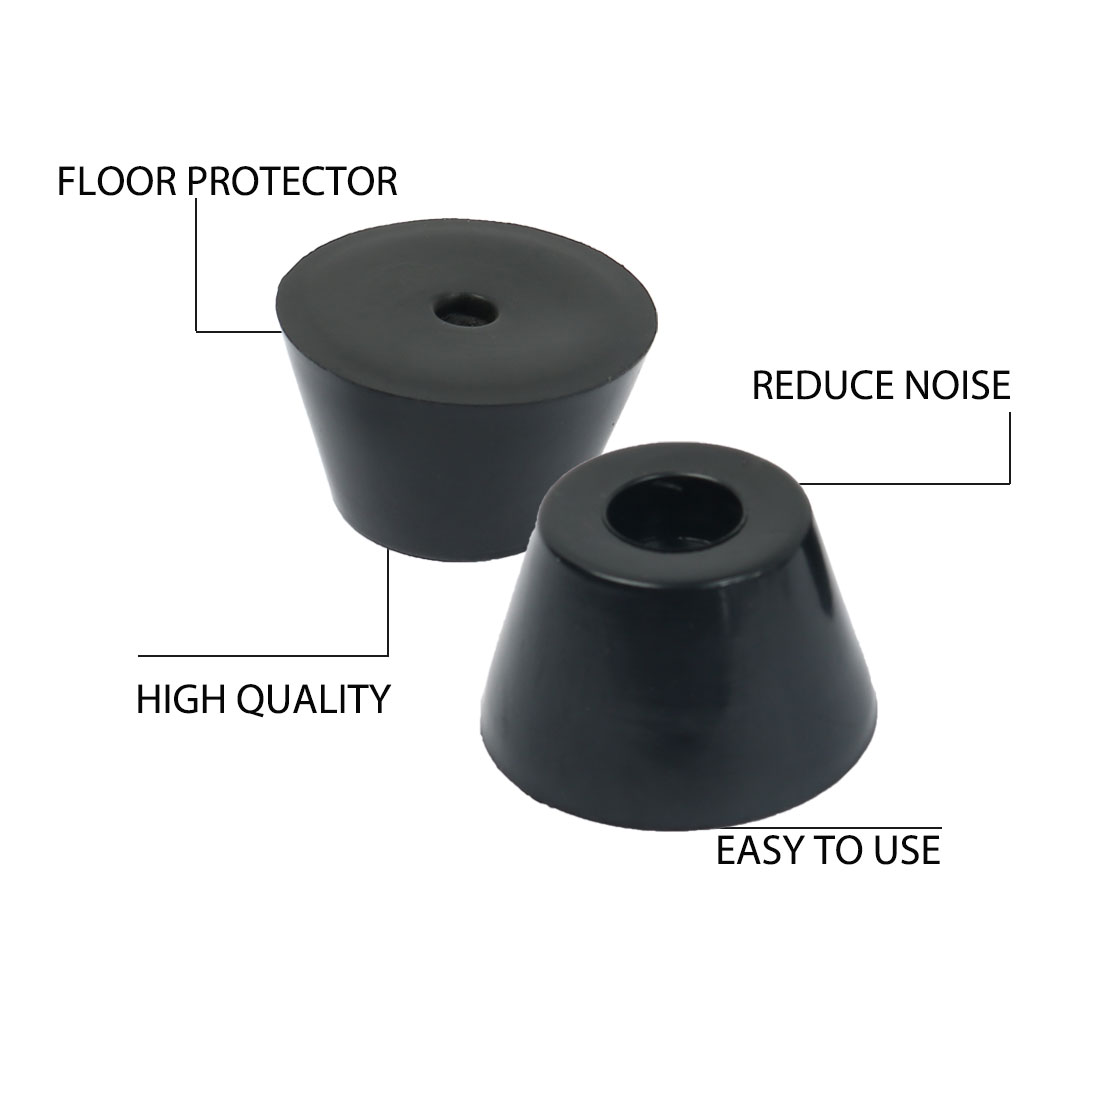 9pcs Rubber Feet Bumpers Furniture Sofa Desk Amplifier Speaker Cabinet Leg Pads Protector D47x32xH29mm - image 2 of 7